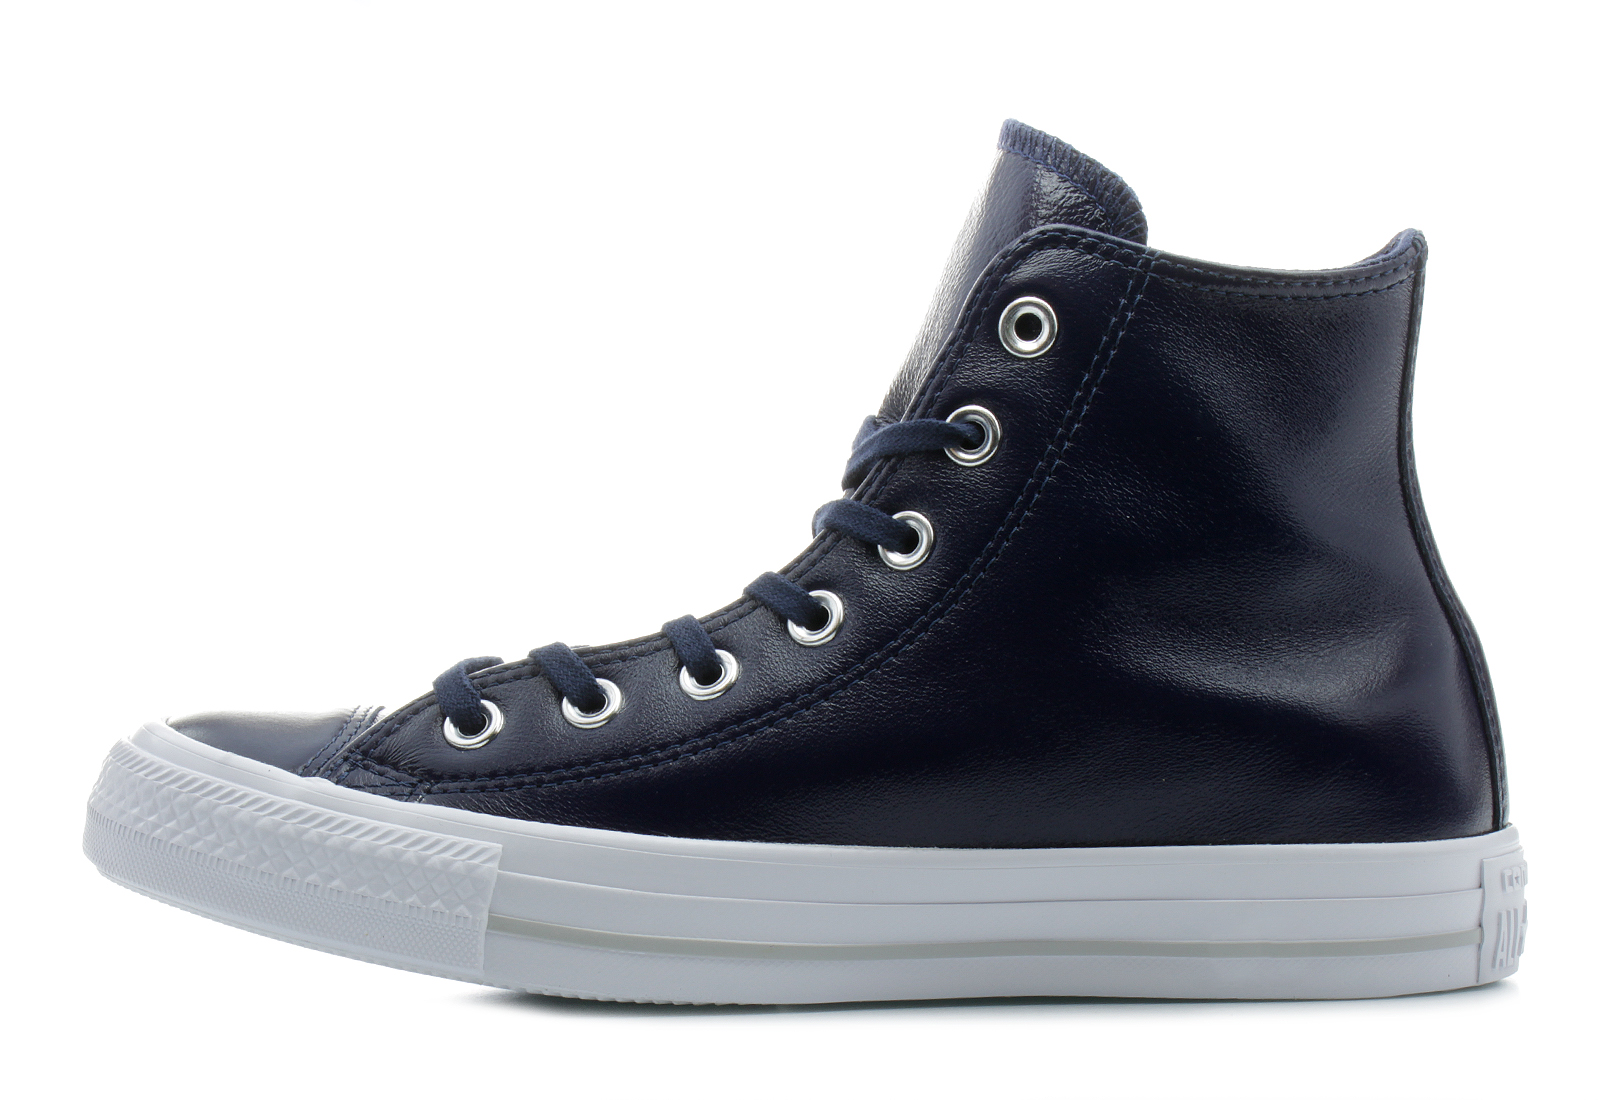 Discounted shoes, clothing, accessories and more at fatalovely.cf! Score on the Style, Score on the Price. Free shipping on orders $50 or more! See Details. chuck taylor all star crinkled patent leather hi and Converse Shoes items found. Sort By. items. View. Sort By. Filter (1) Your Selections. Shoes.